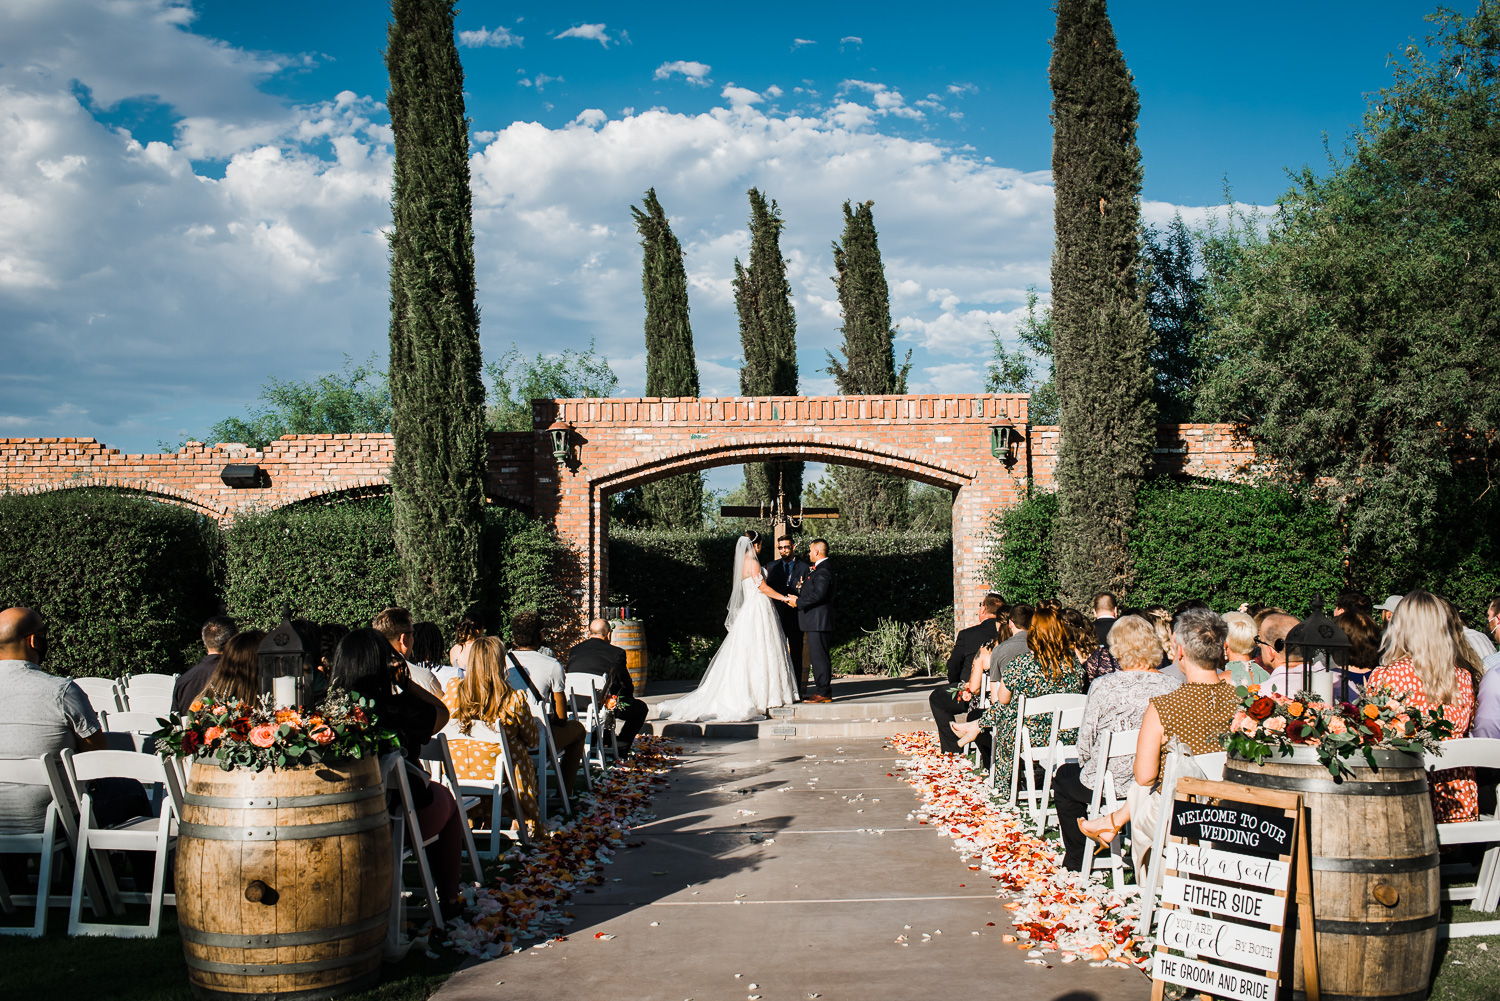 Windmill Winery Arches Wedding Ceremony